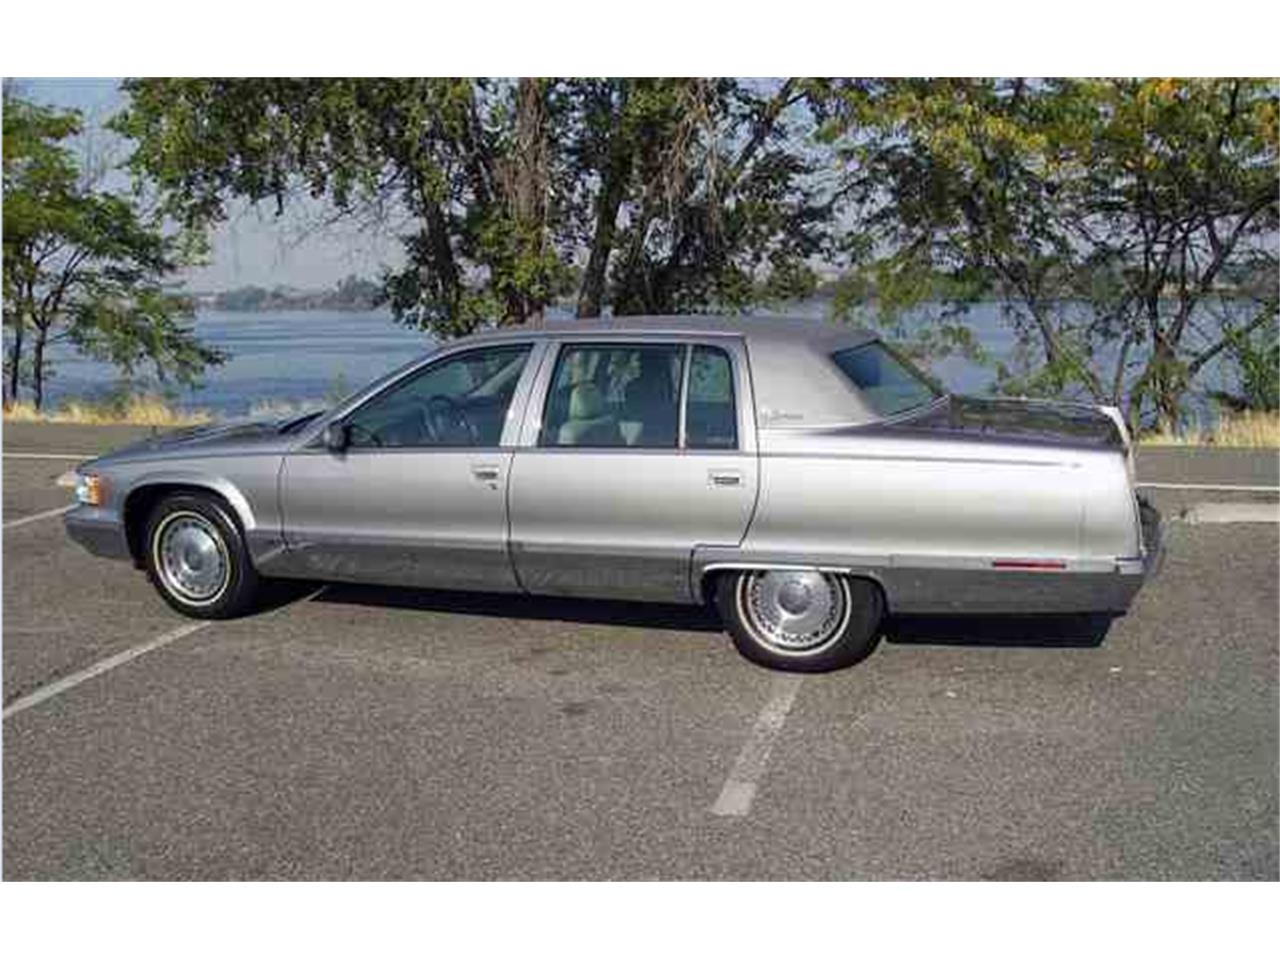 1995 cadillac fleetwood brougham for sale classiccars com cc 1022373 1995 cadillac fleetwood brougham for